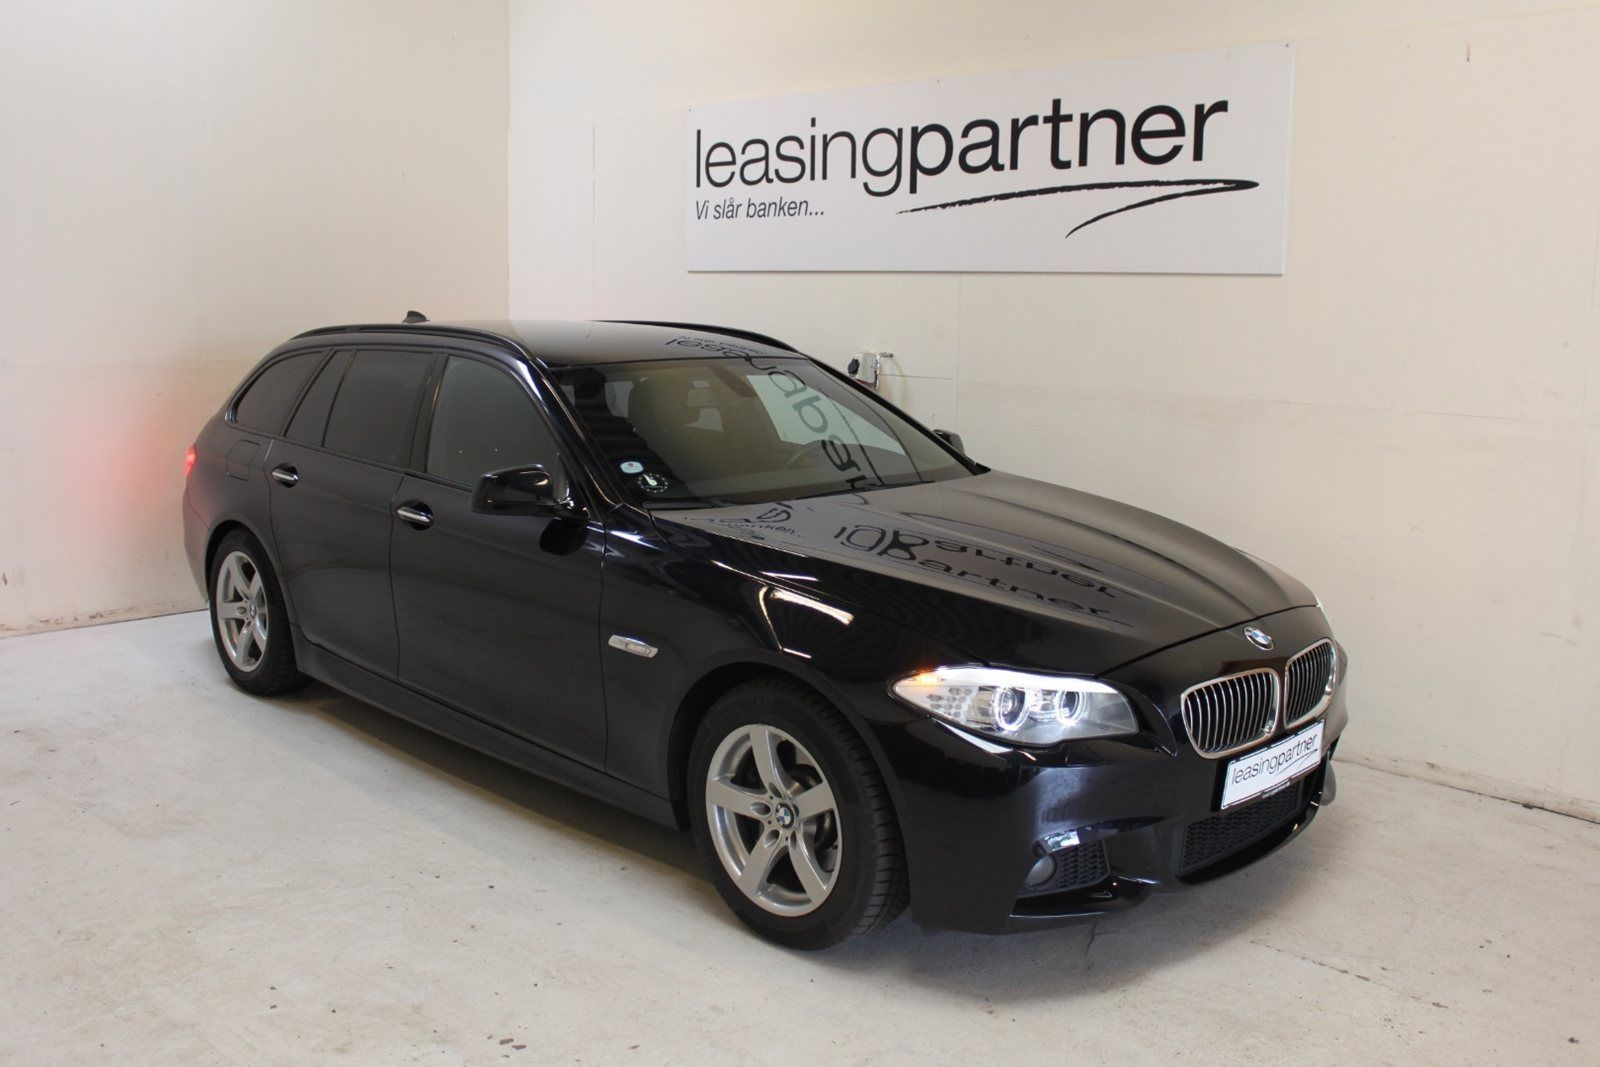 bmw 530d 3 0 touring aut 5d sortmetal leasing partner. Black Bedroom Furniture Sets. Home Design Ideas